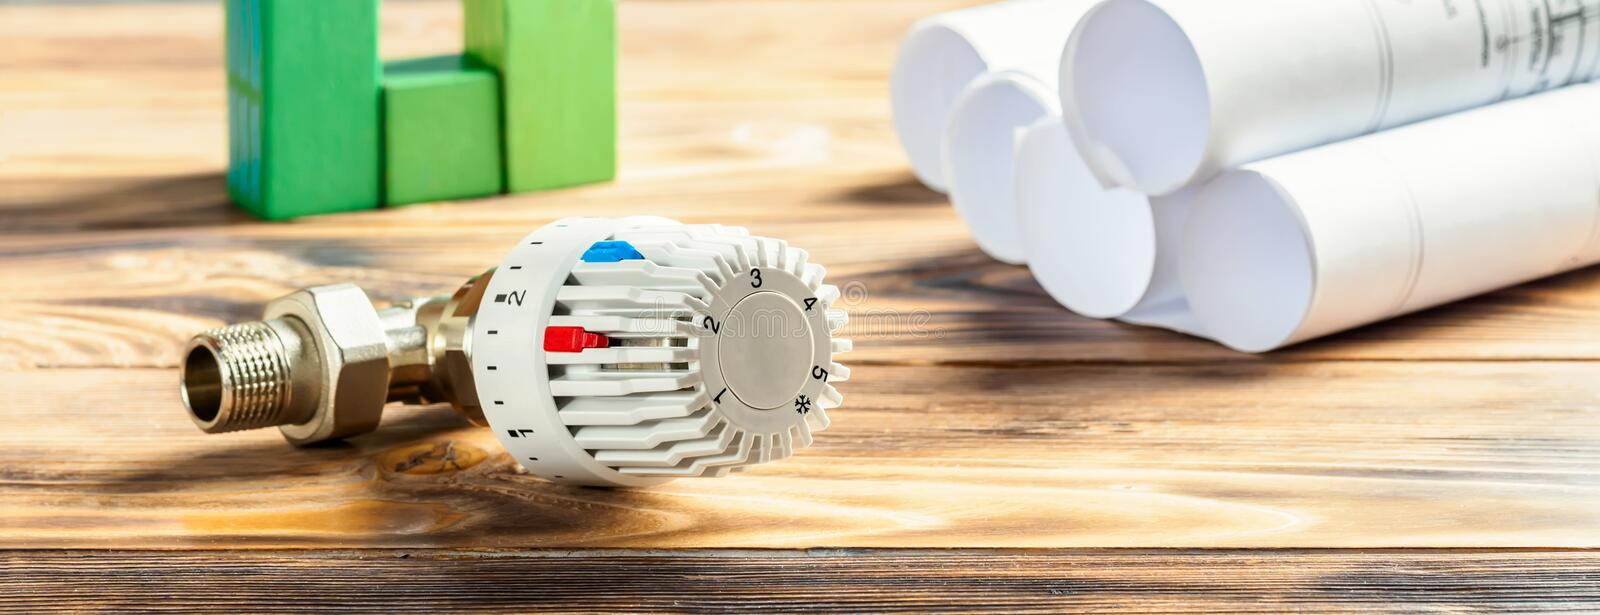 Concept of Energy saving. Thermostatic Head Valve for Radiator Heater and green house of cubes on wooden background Heating Project Heat Supply Building Concept stock photography